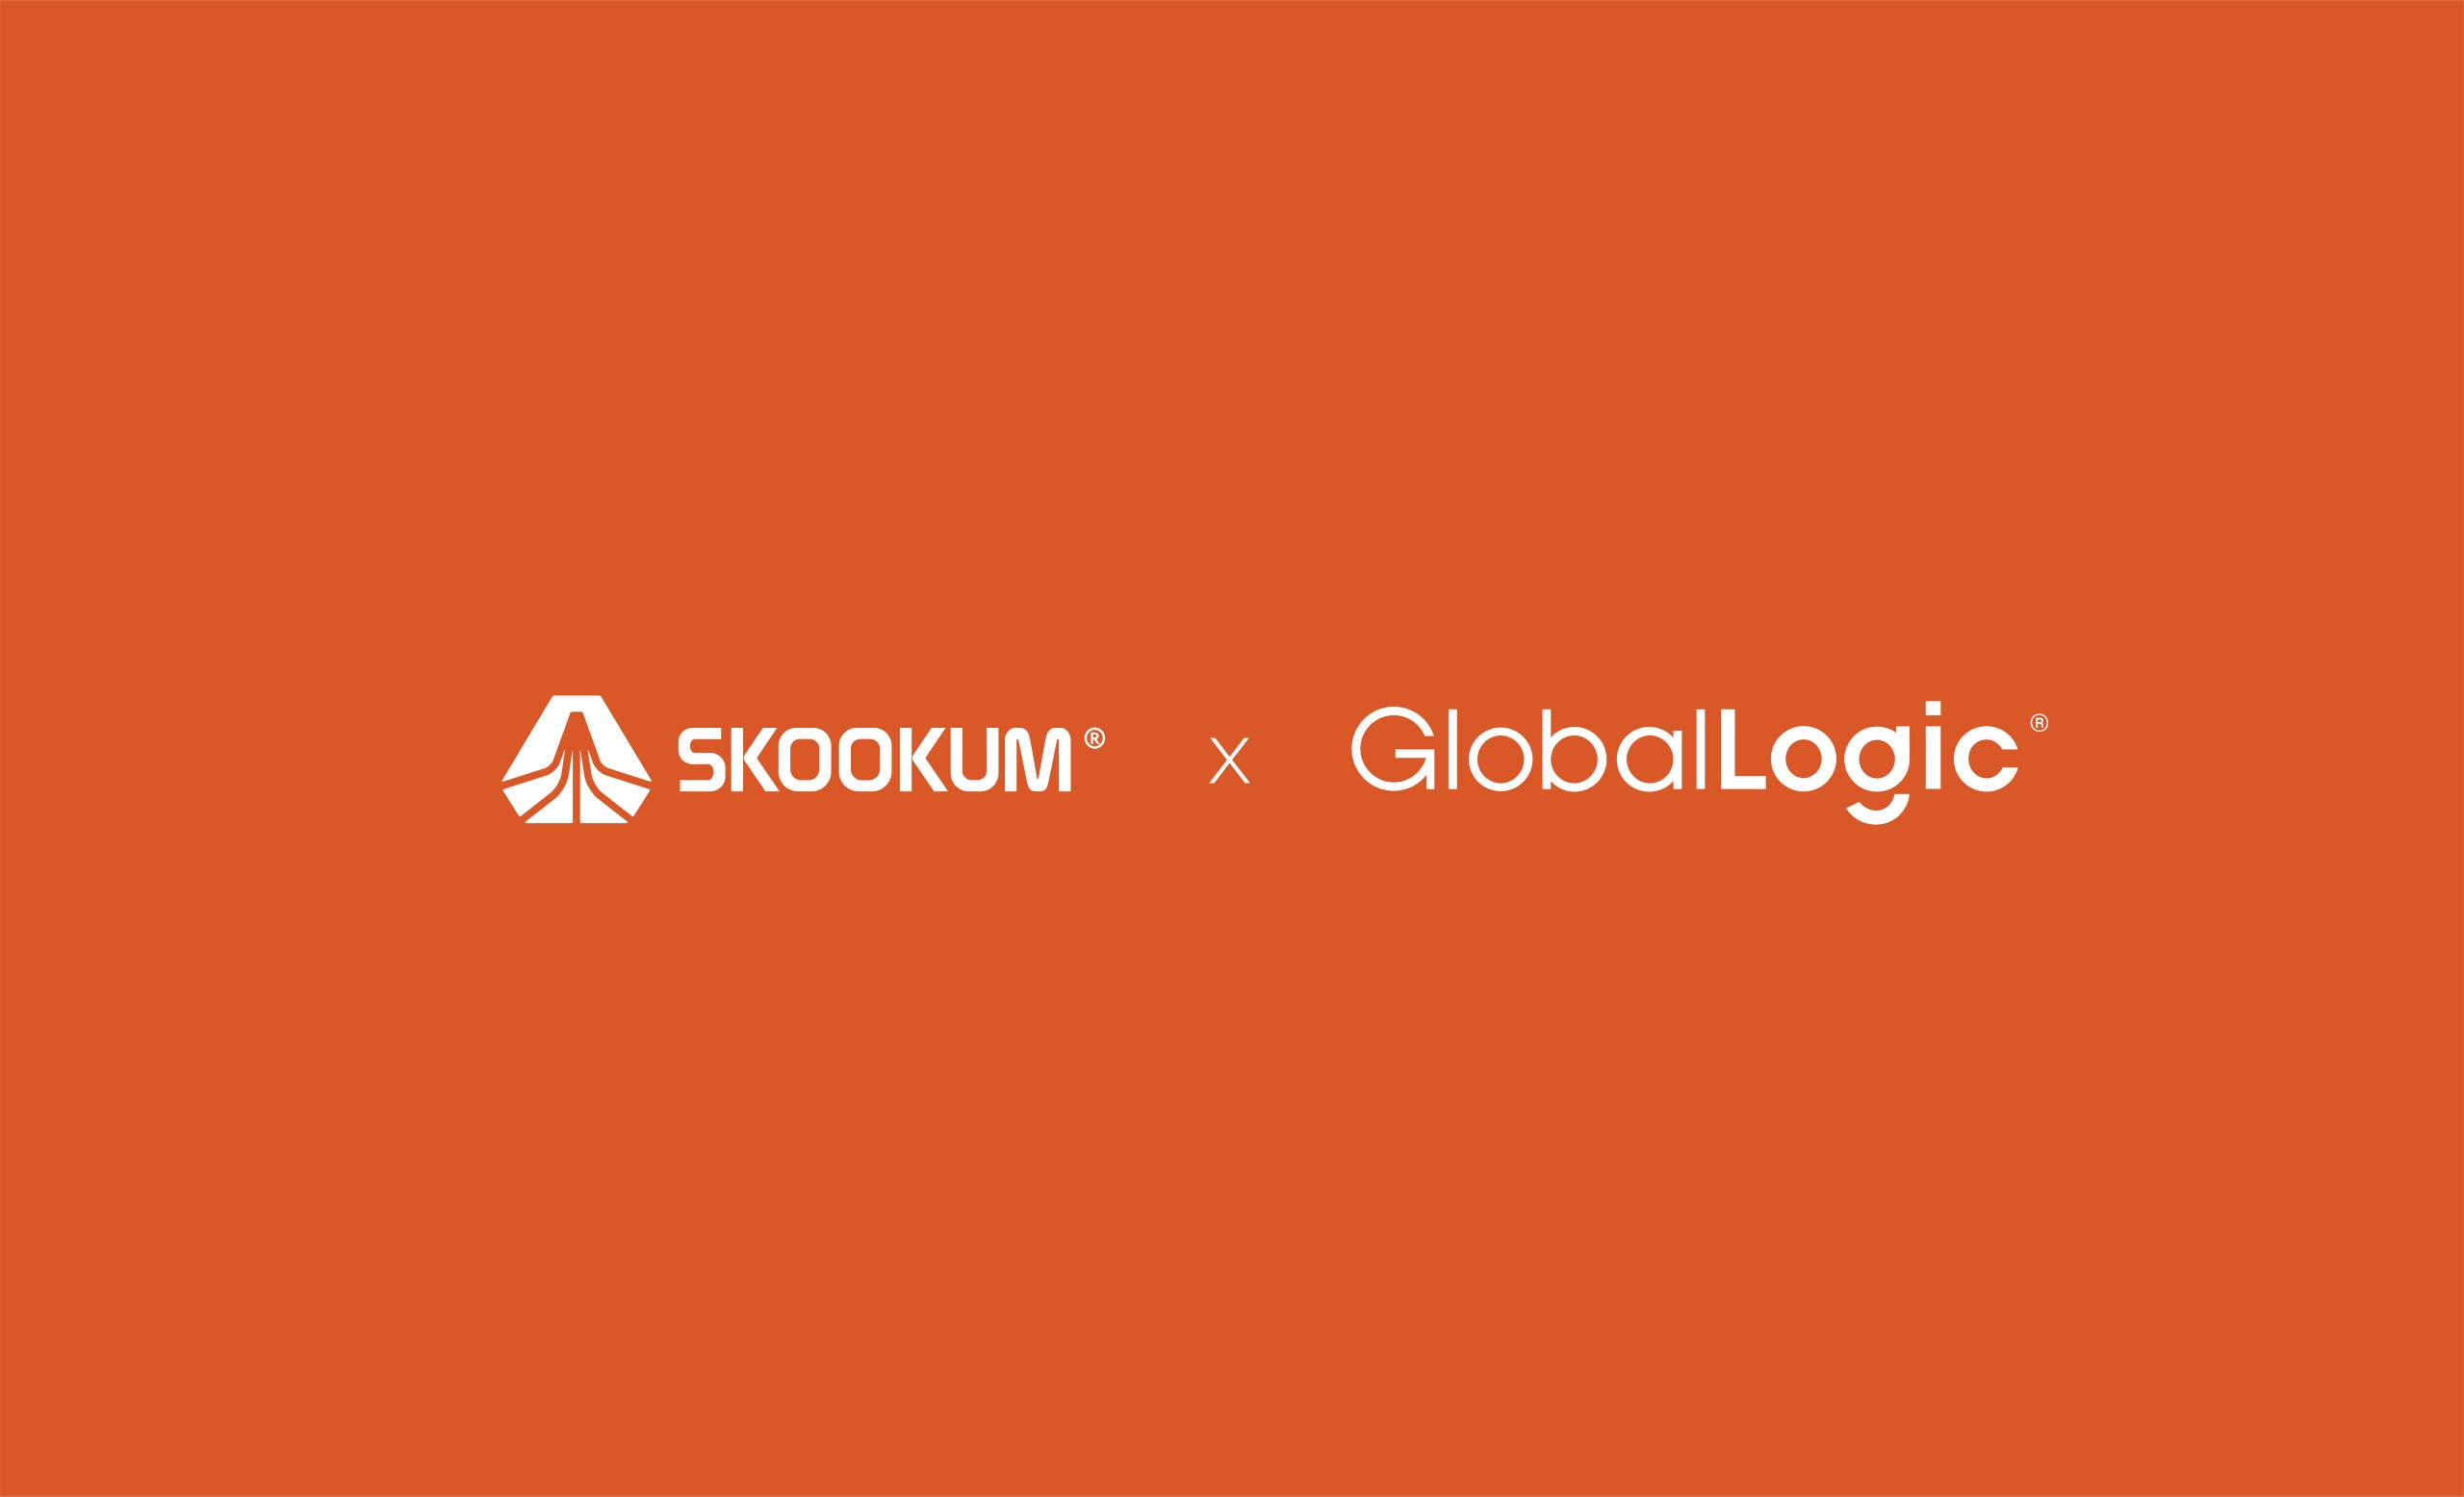 Skookum and GlobalLogic